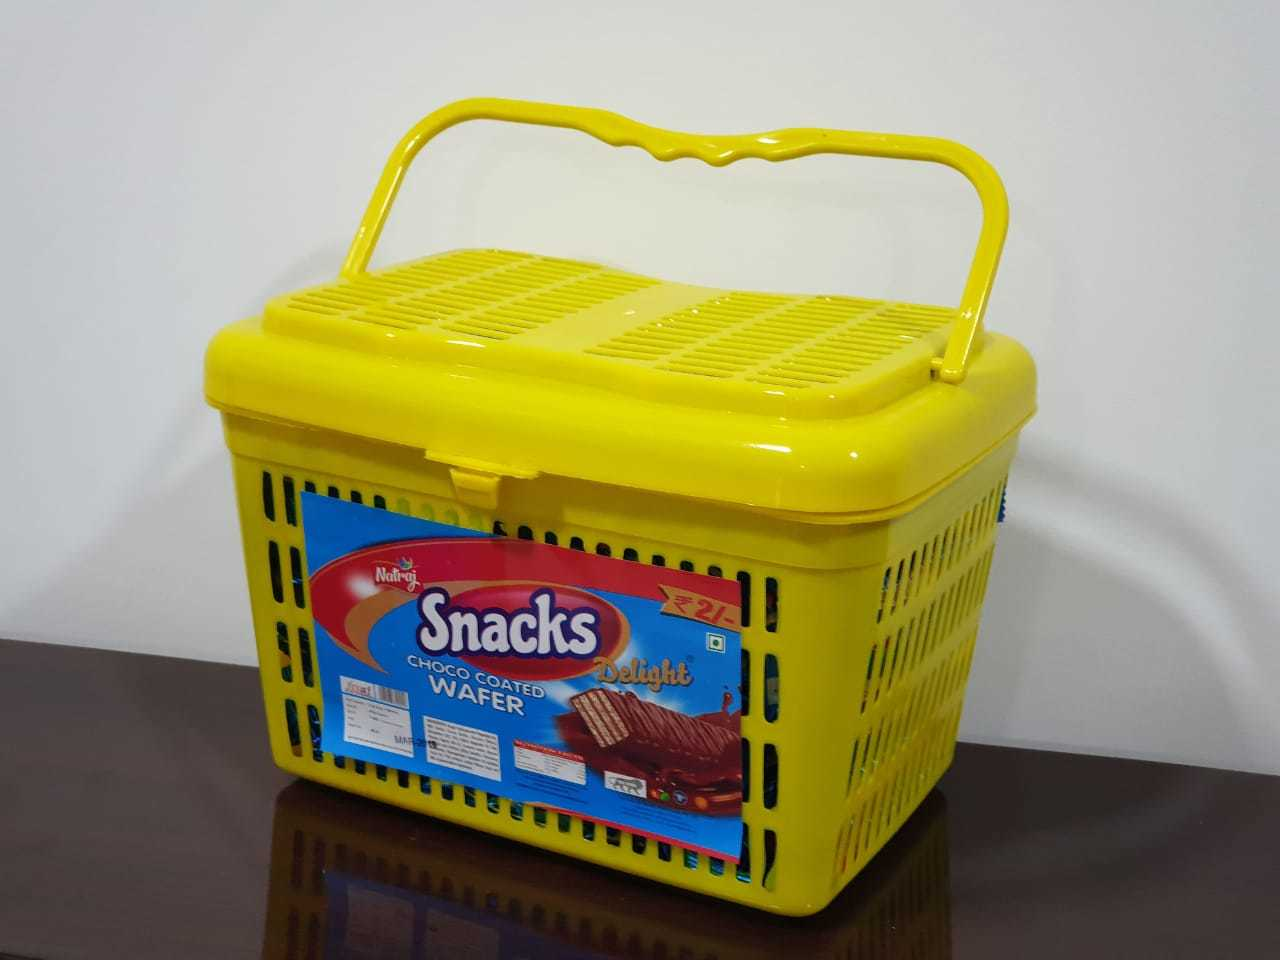 Snack Delight Choco Coated Basket